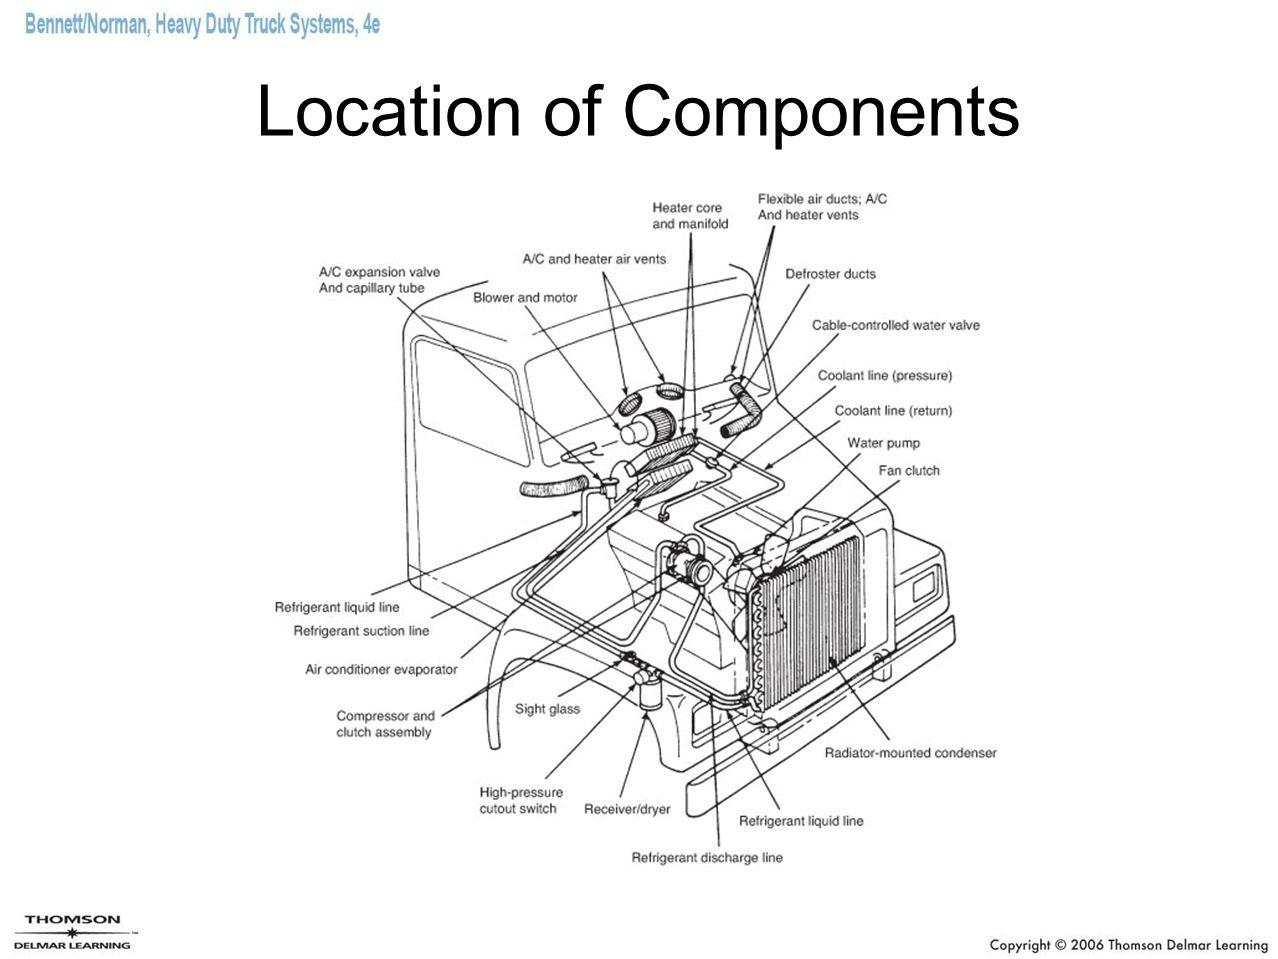 hight resolution of 11 location of components